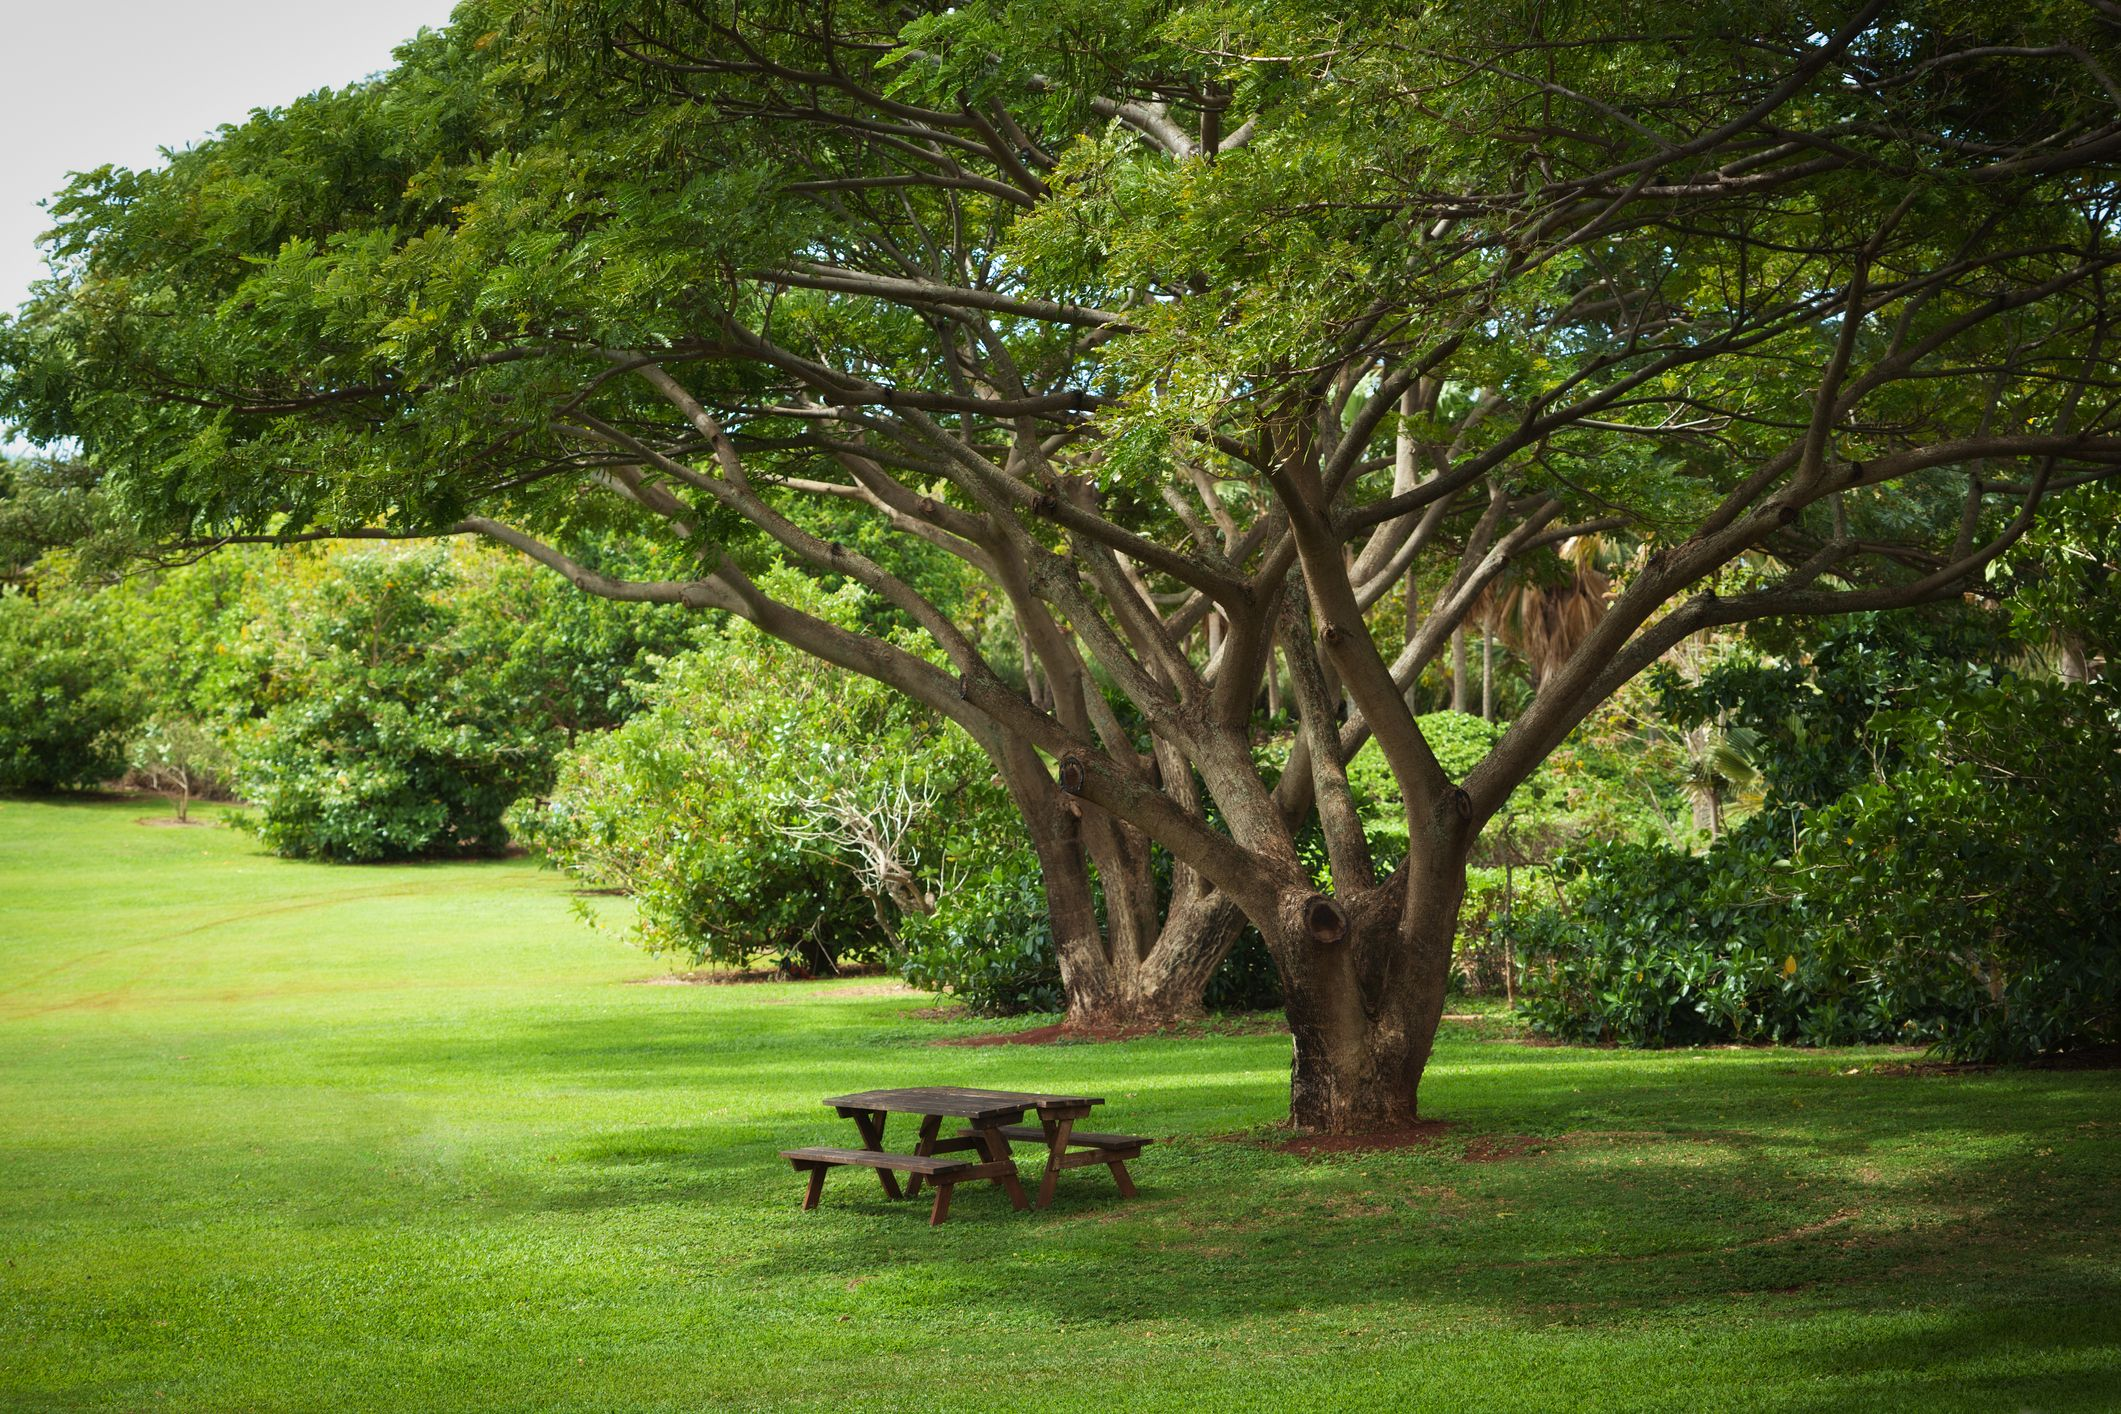 10 Fast Growing Shade Trees For Dappled Sunlight Where You Want It